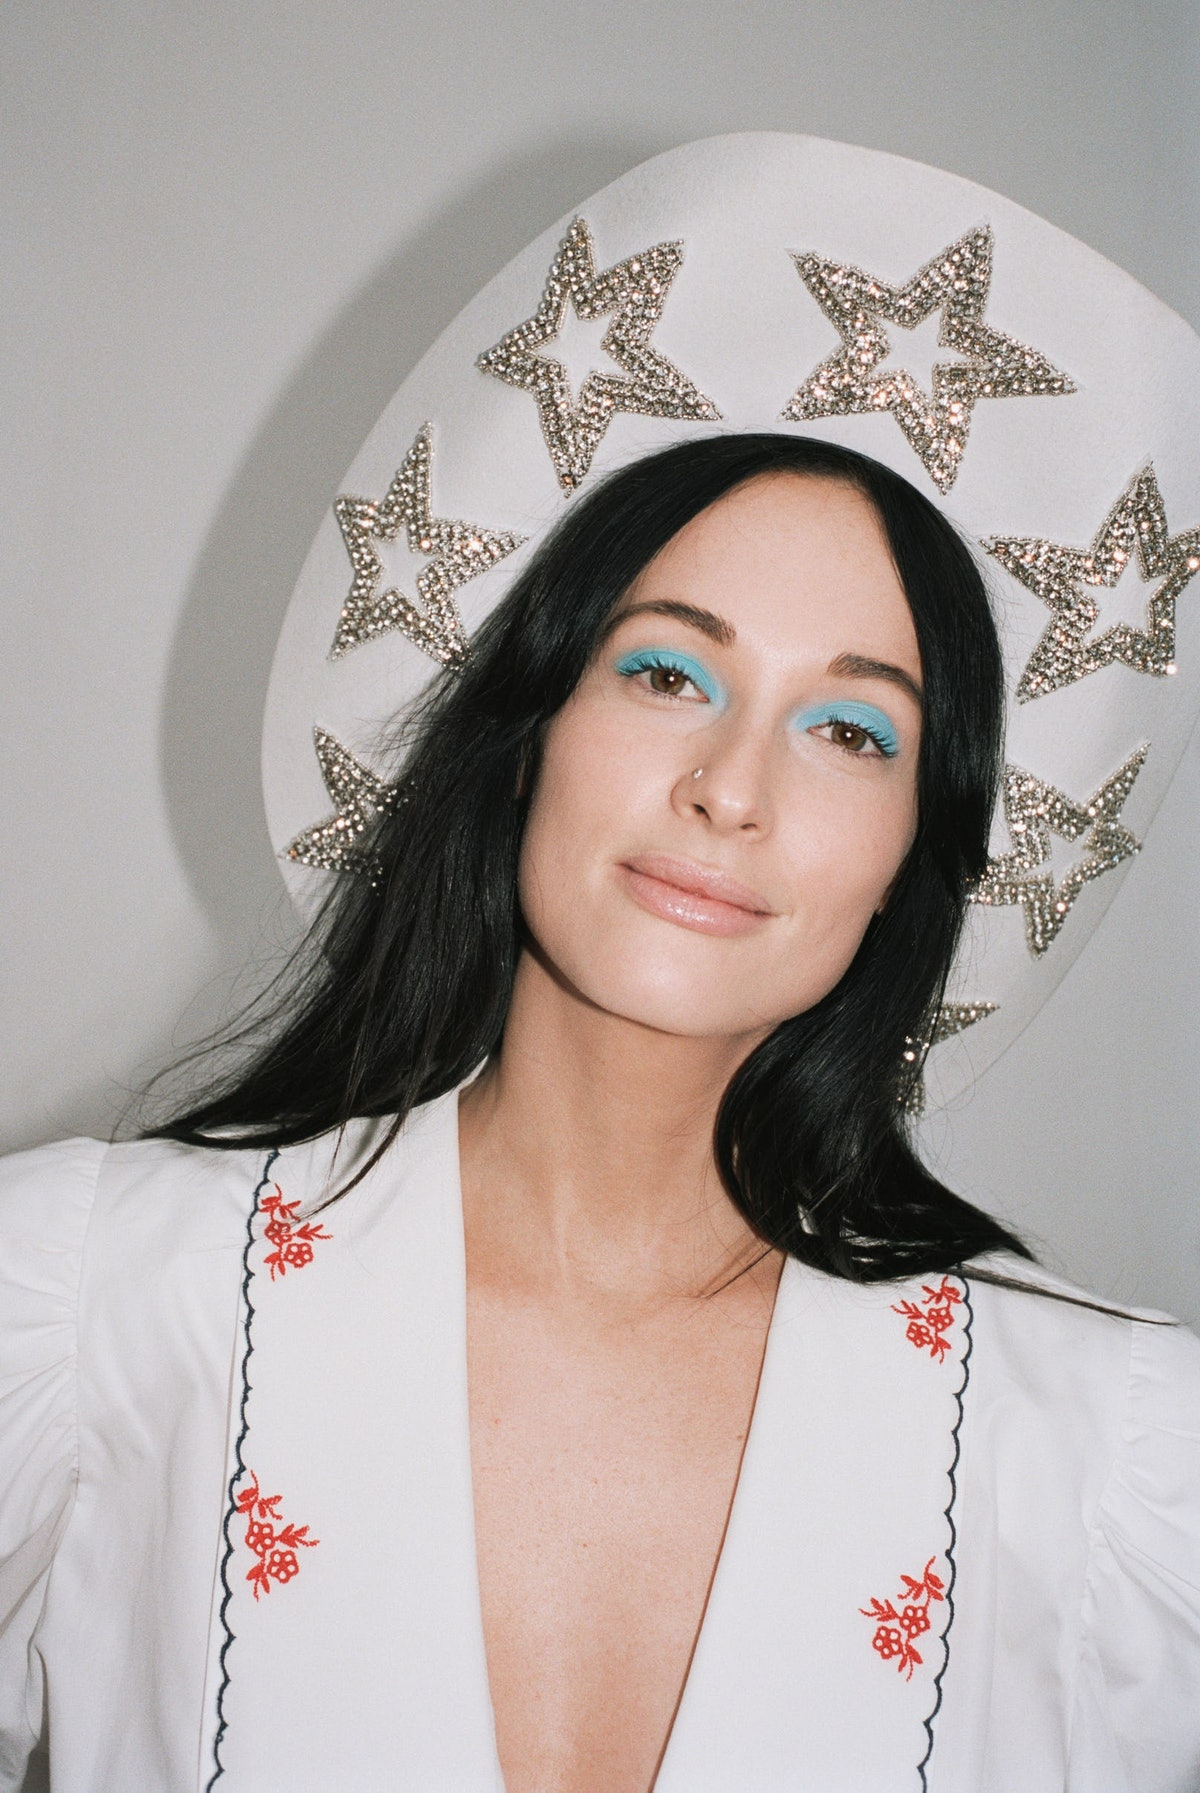 Kacey Musgraves in cowboy hat.